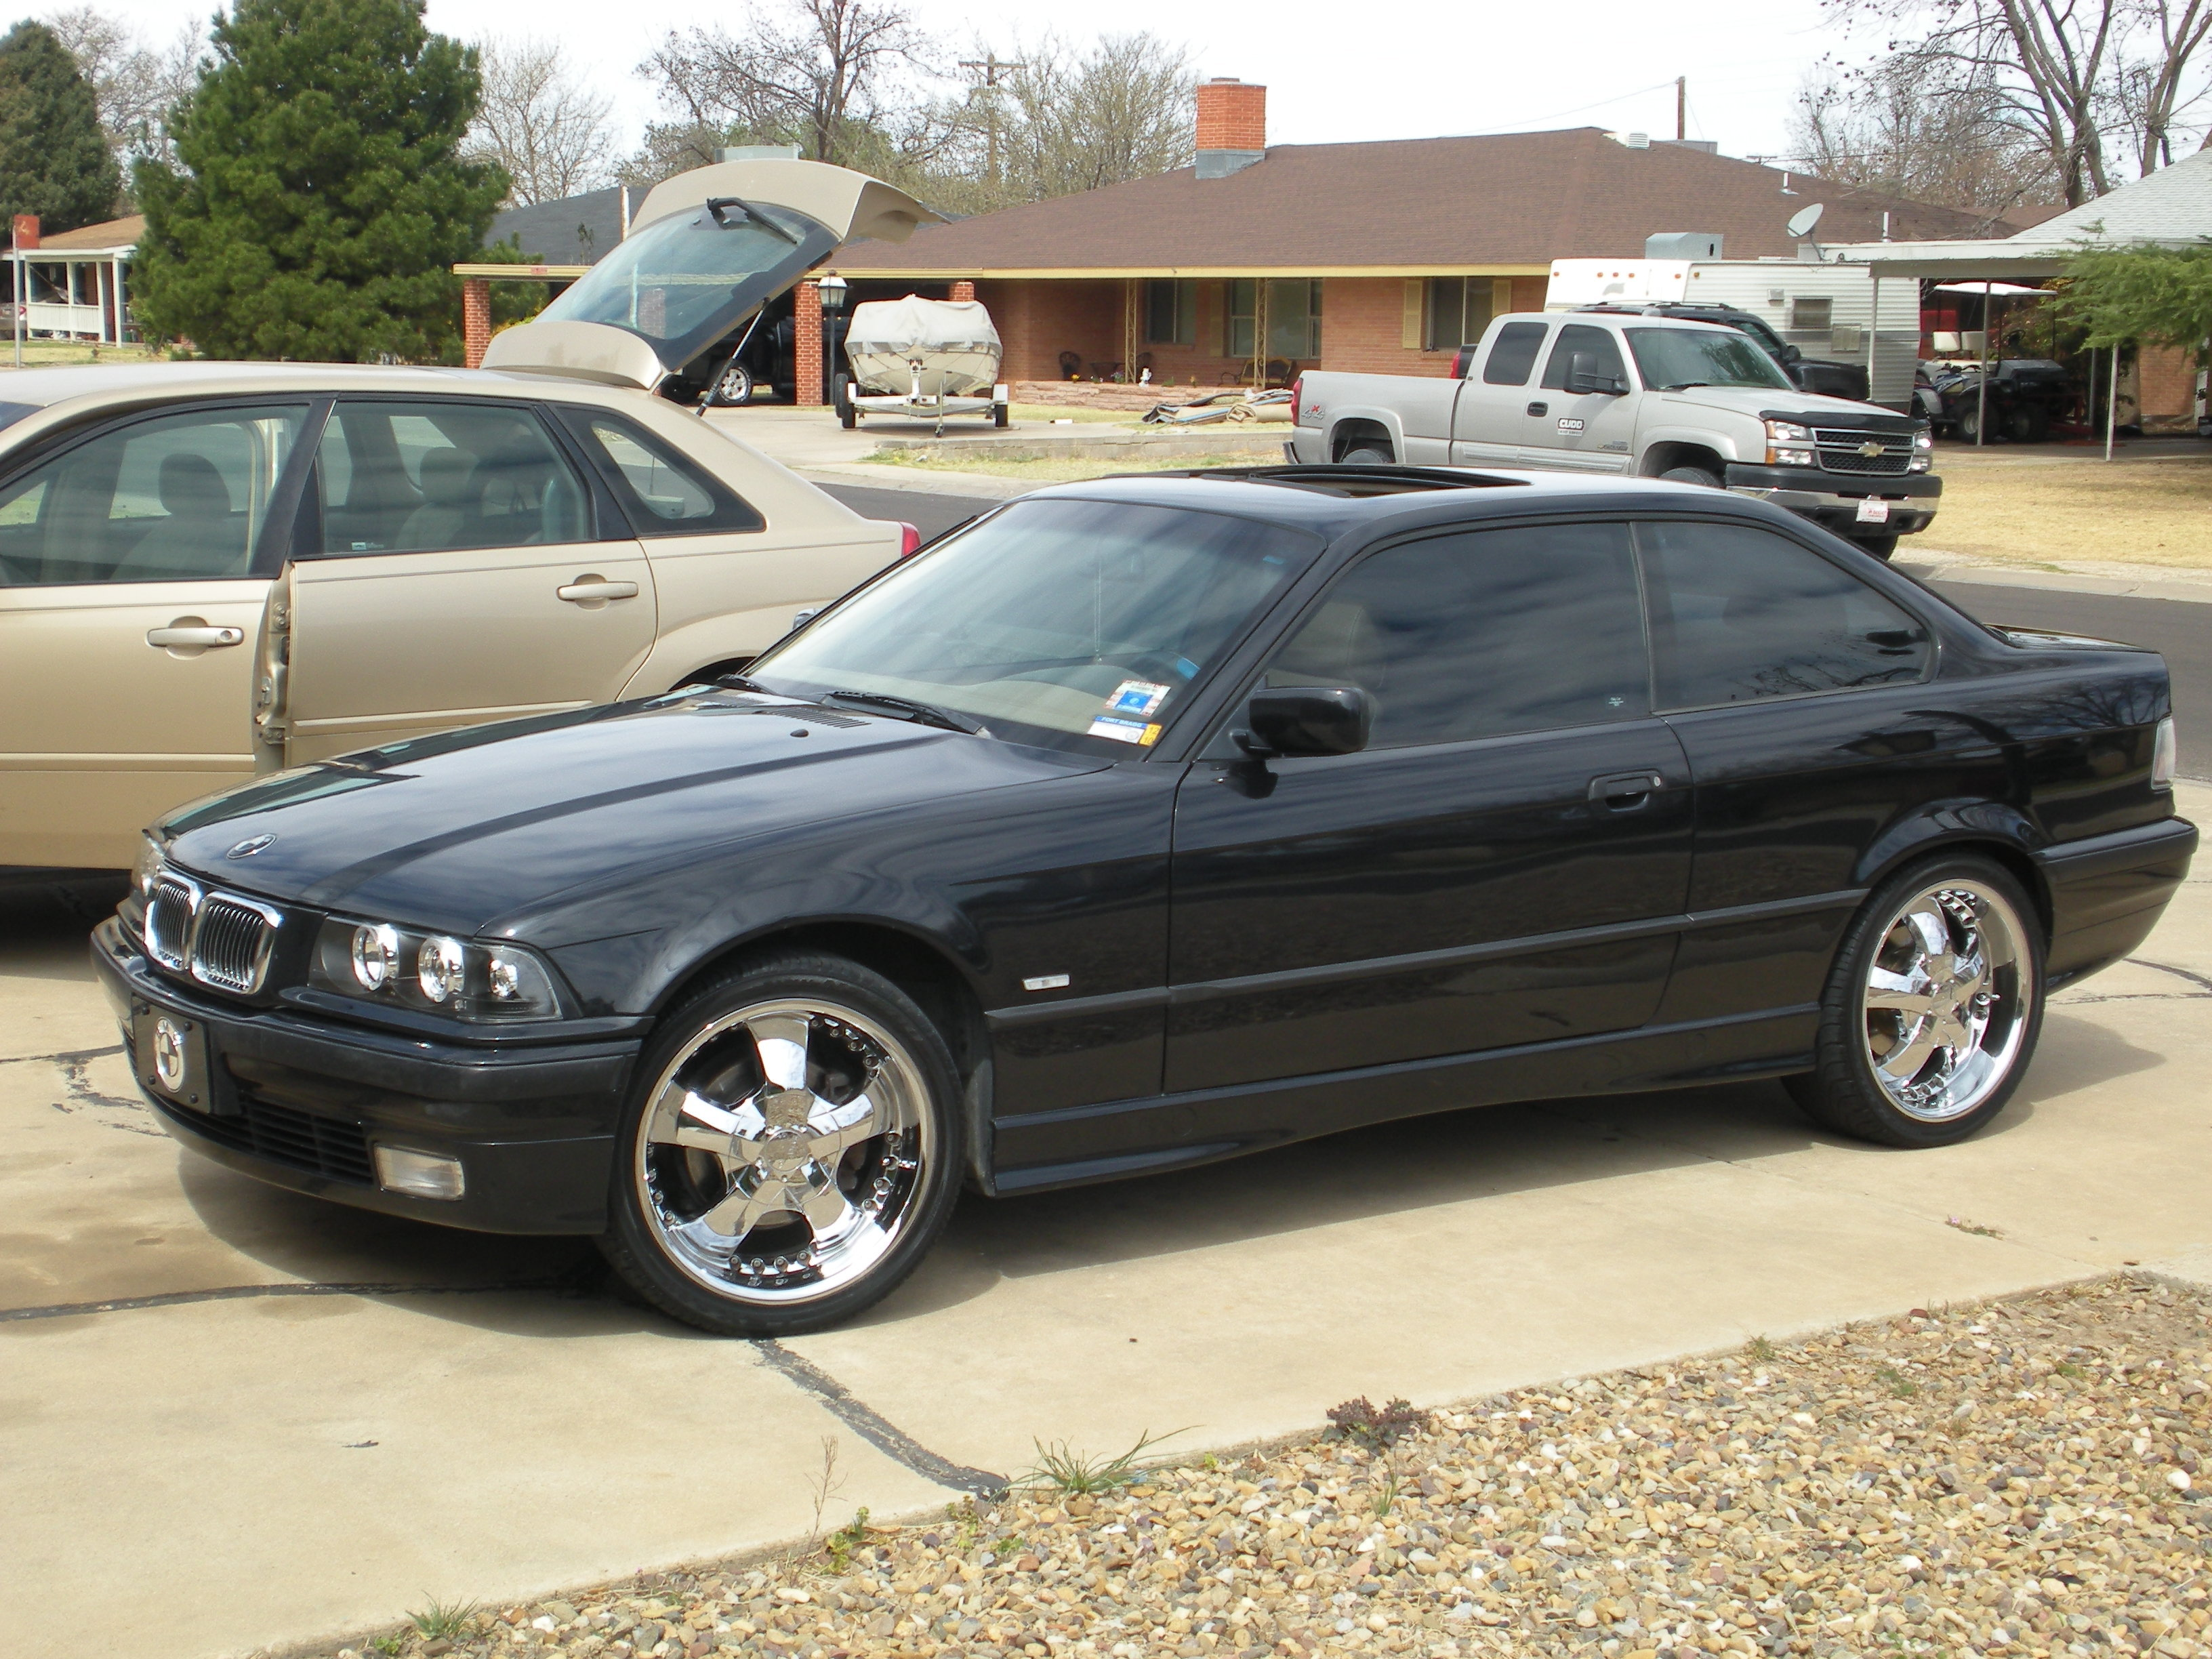 samson 1 1998 bmw 3 series specs photos modification info at cardomain. Black Bedroom Furniture Sets. Home Design Ideas